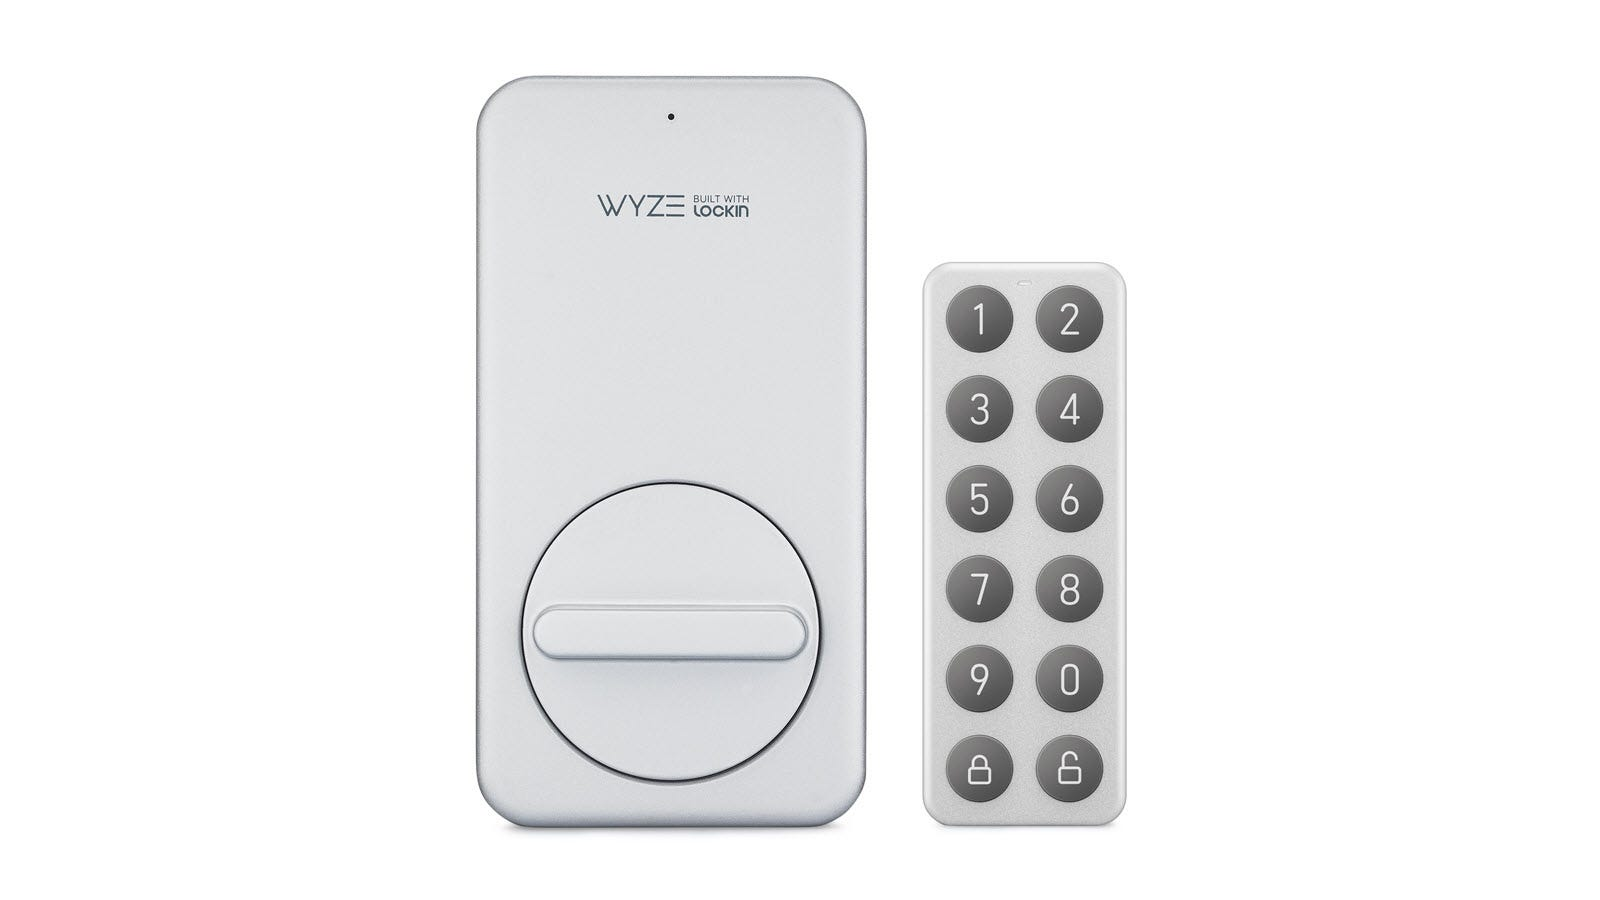 A white Wyze Smart Lock next to a white keypad with gray numeric buttons.